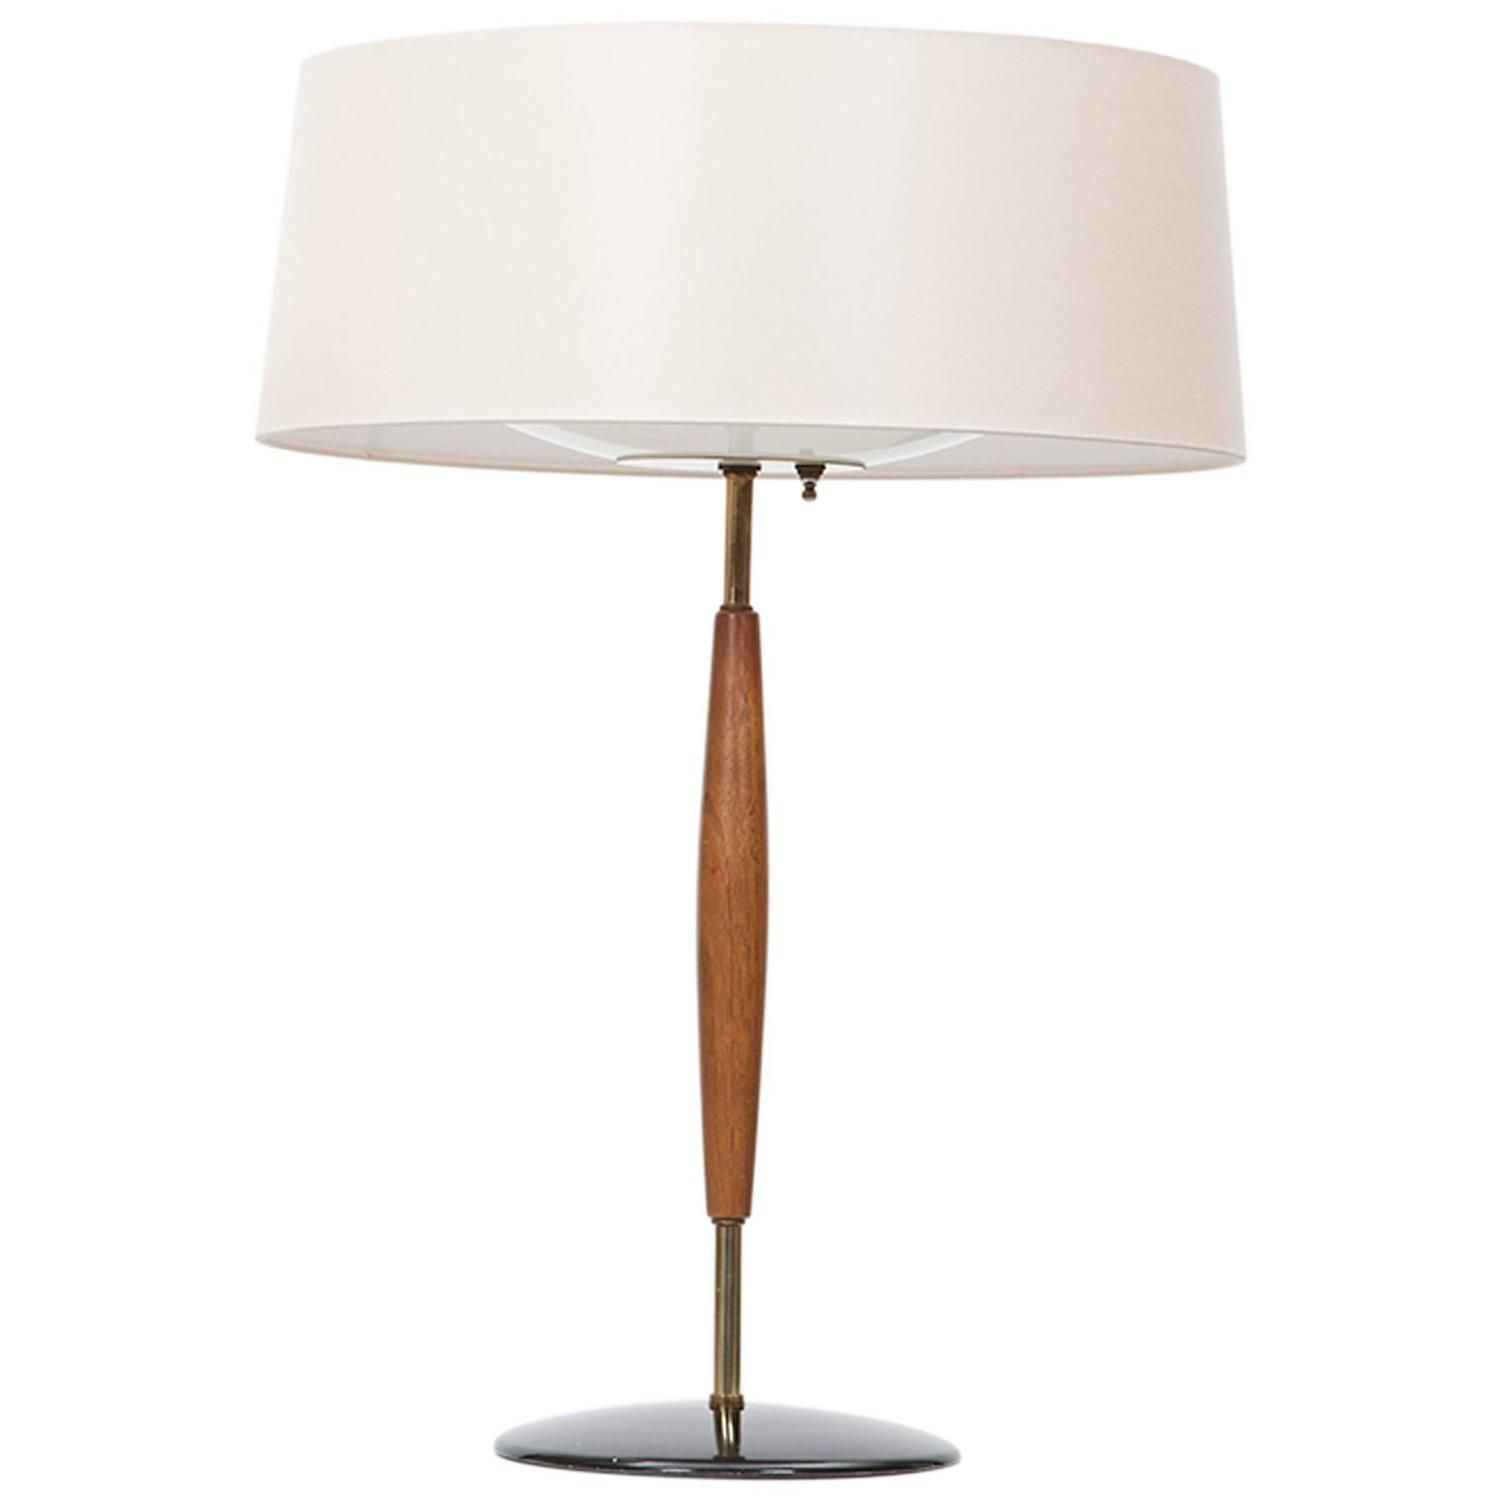 Gerald thurston table lamp a diffusers room lamp and sitting rooms gerald thurston table lamp a 1 geotapseo Image collections